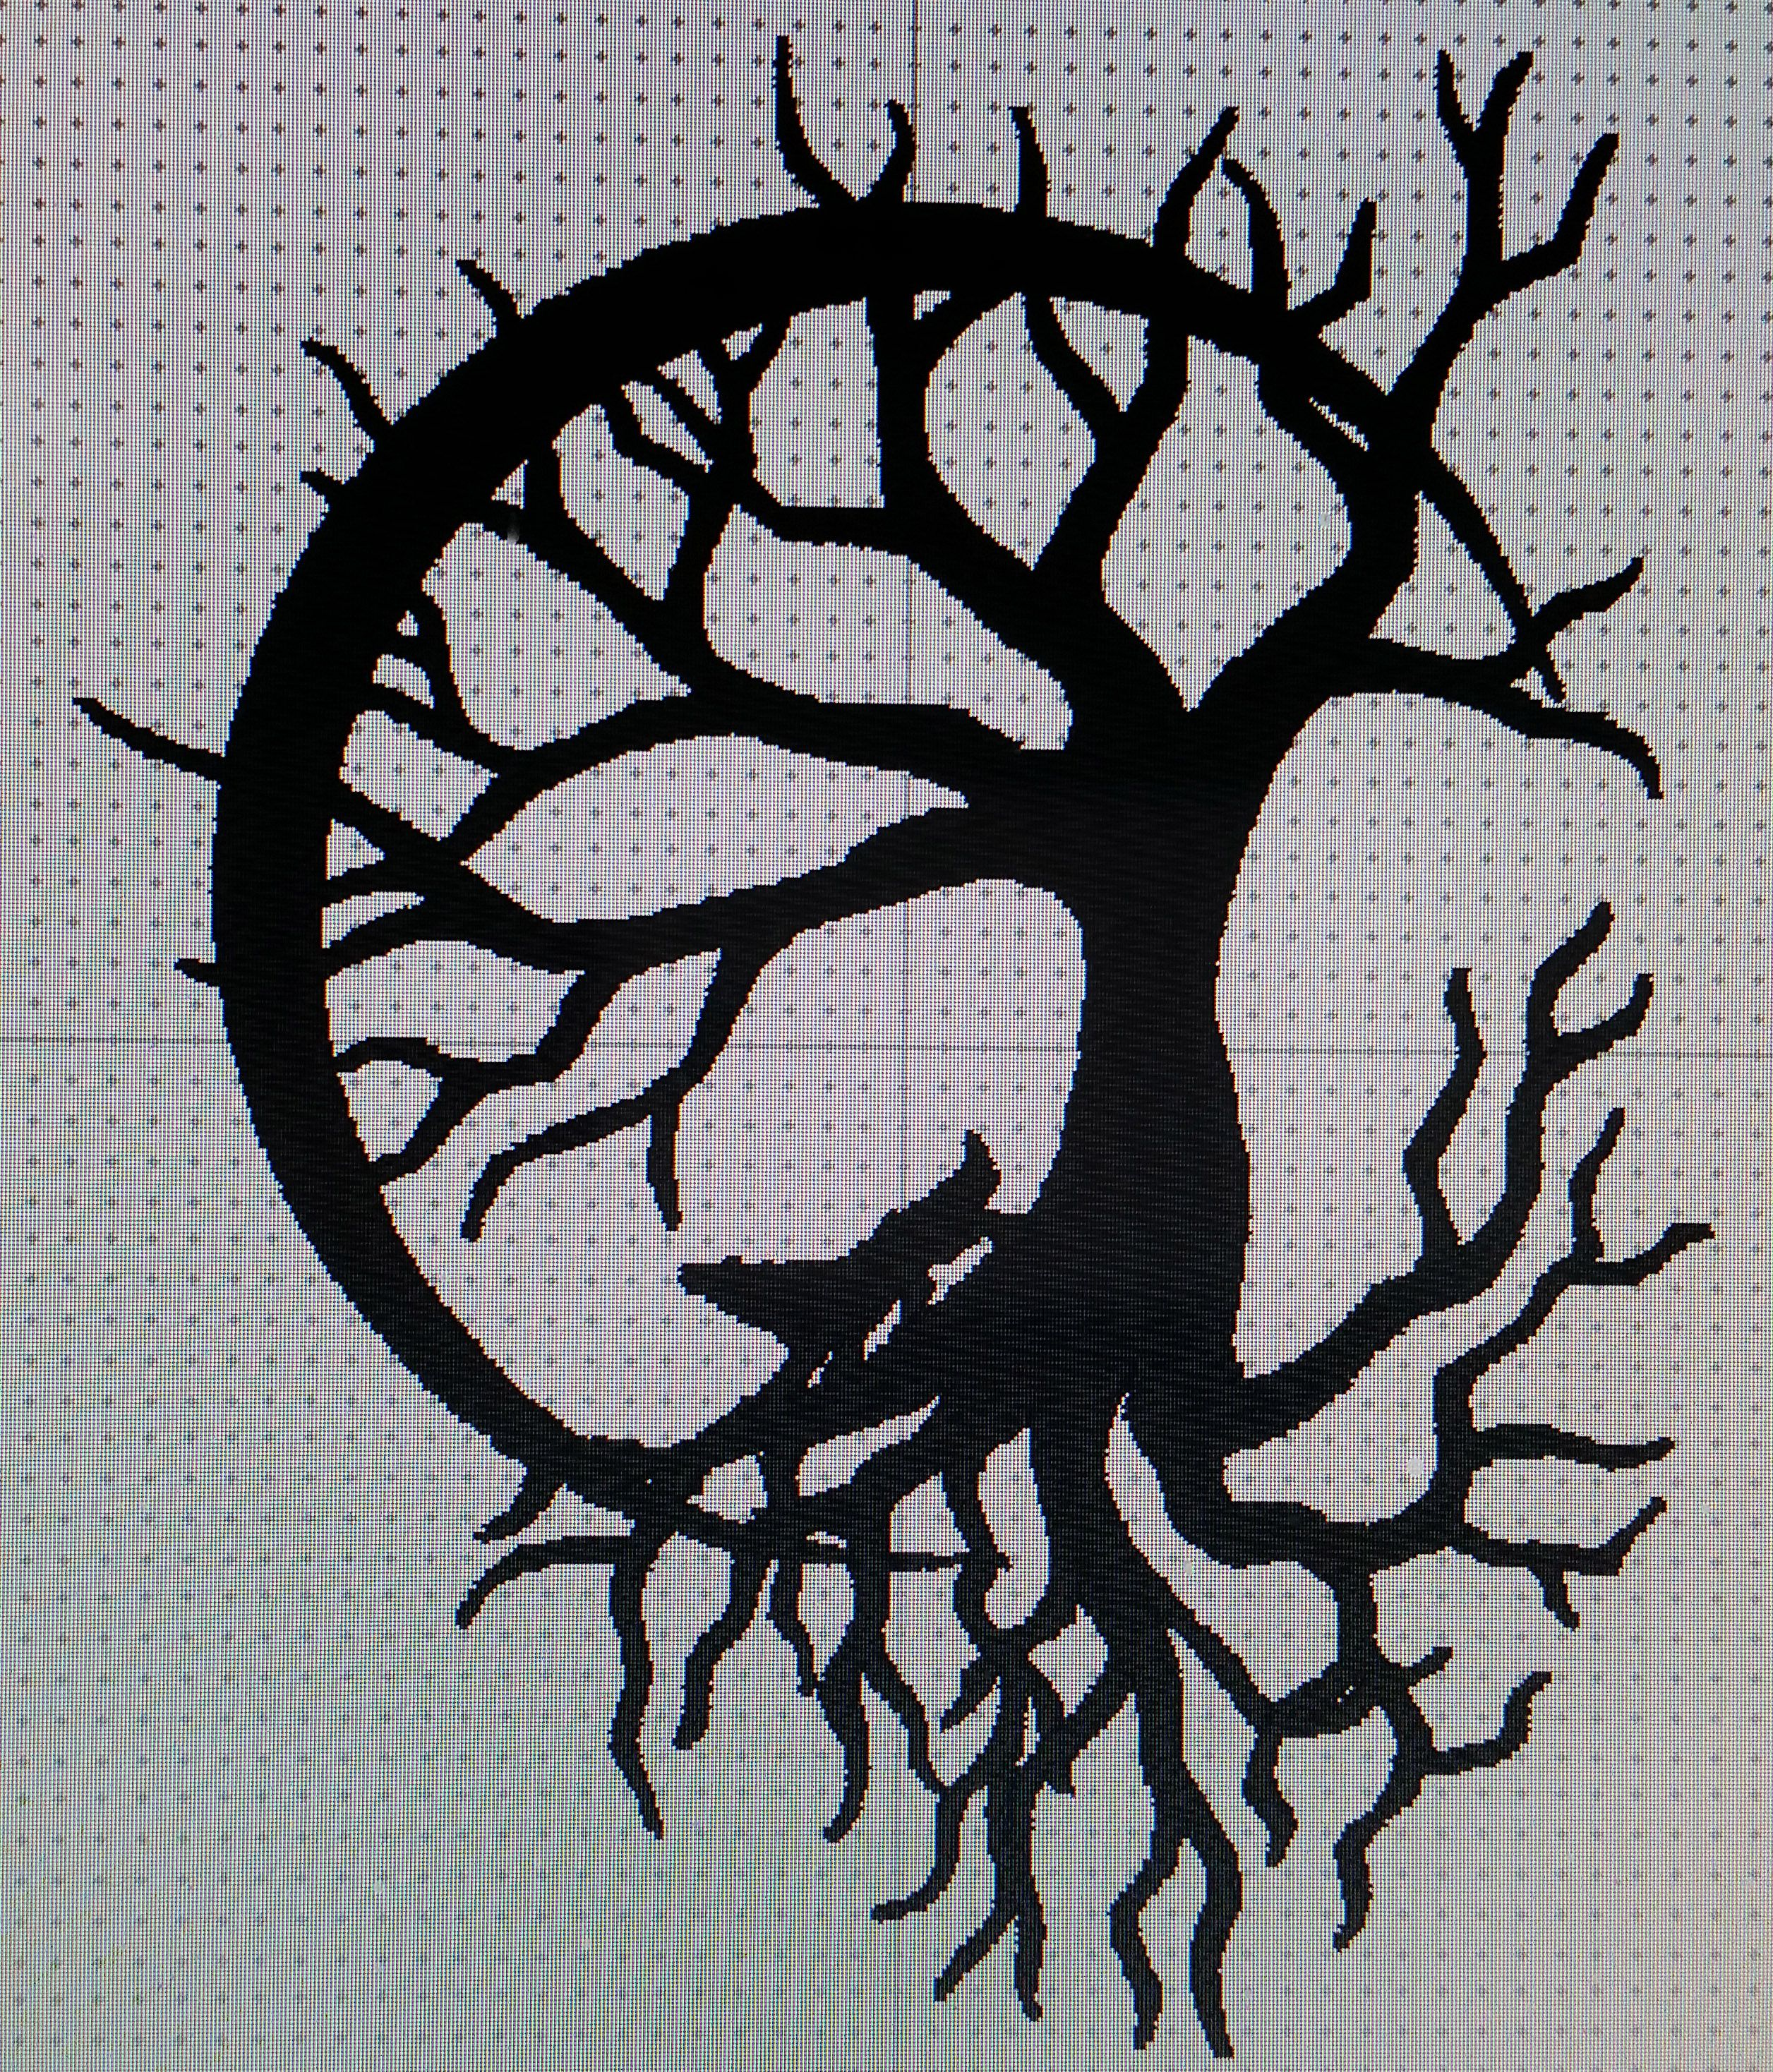 Wolf bay tree of life machine embroidery pattern design my own wolf bay tree of life machine embroidery pattern design bankloansurffo Choice Image